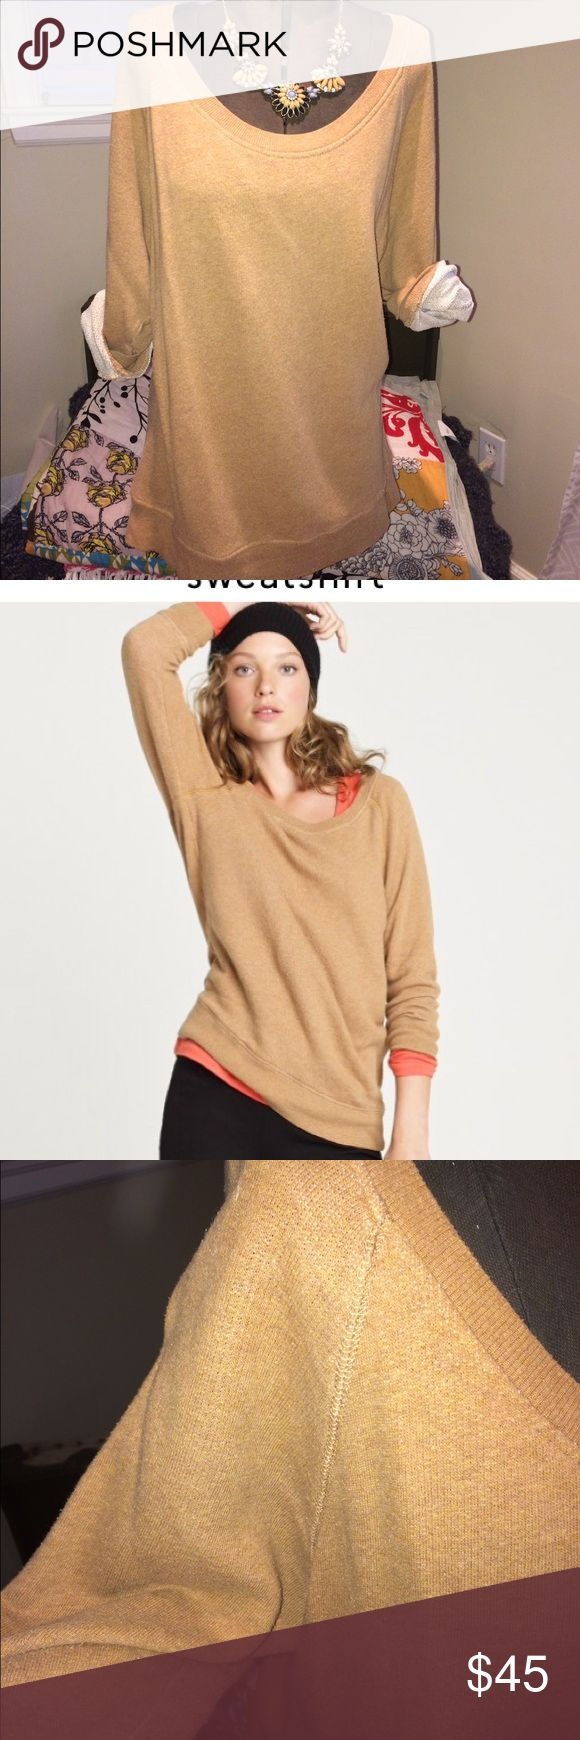 "J Crew slouchy dolman sleeve sweatshirt Slouchy J Crew dolman sleeve sweatshirt. Extremely comfortable. Can be worn with leggings or dressed up. In great condition with minimal piling (shown in last pic). 26.5"" long J. Crew Sweaters Crew & Scoop Necks"